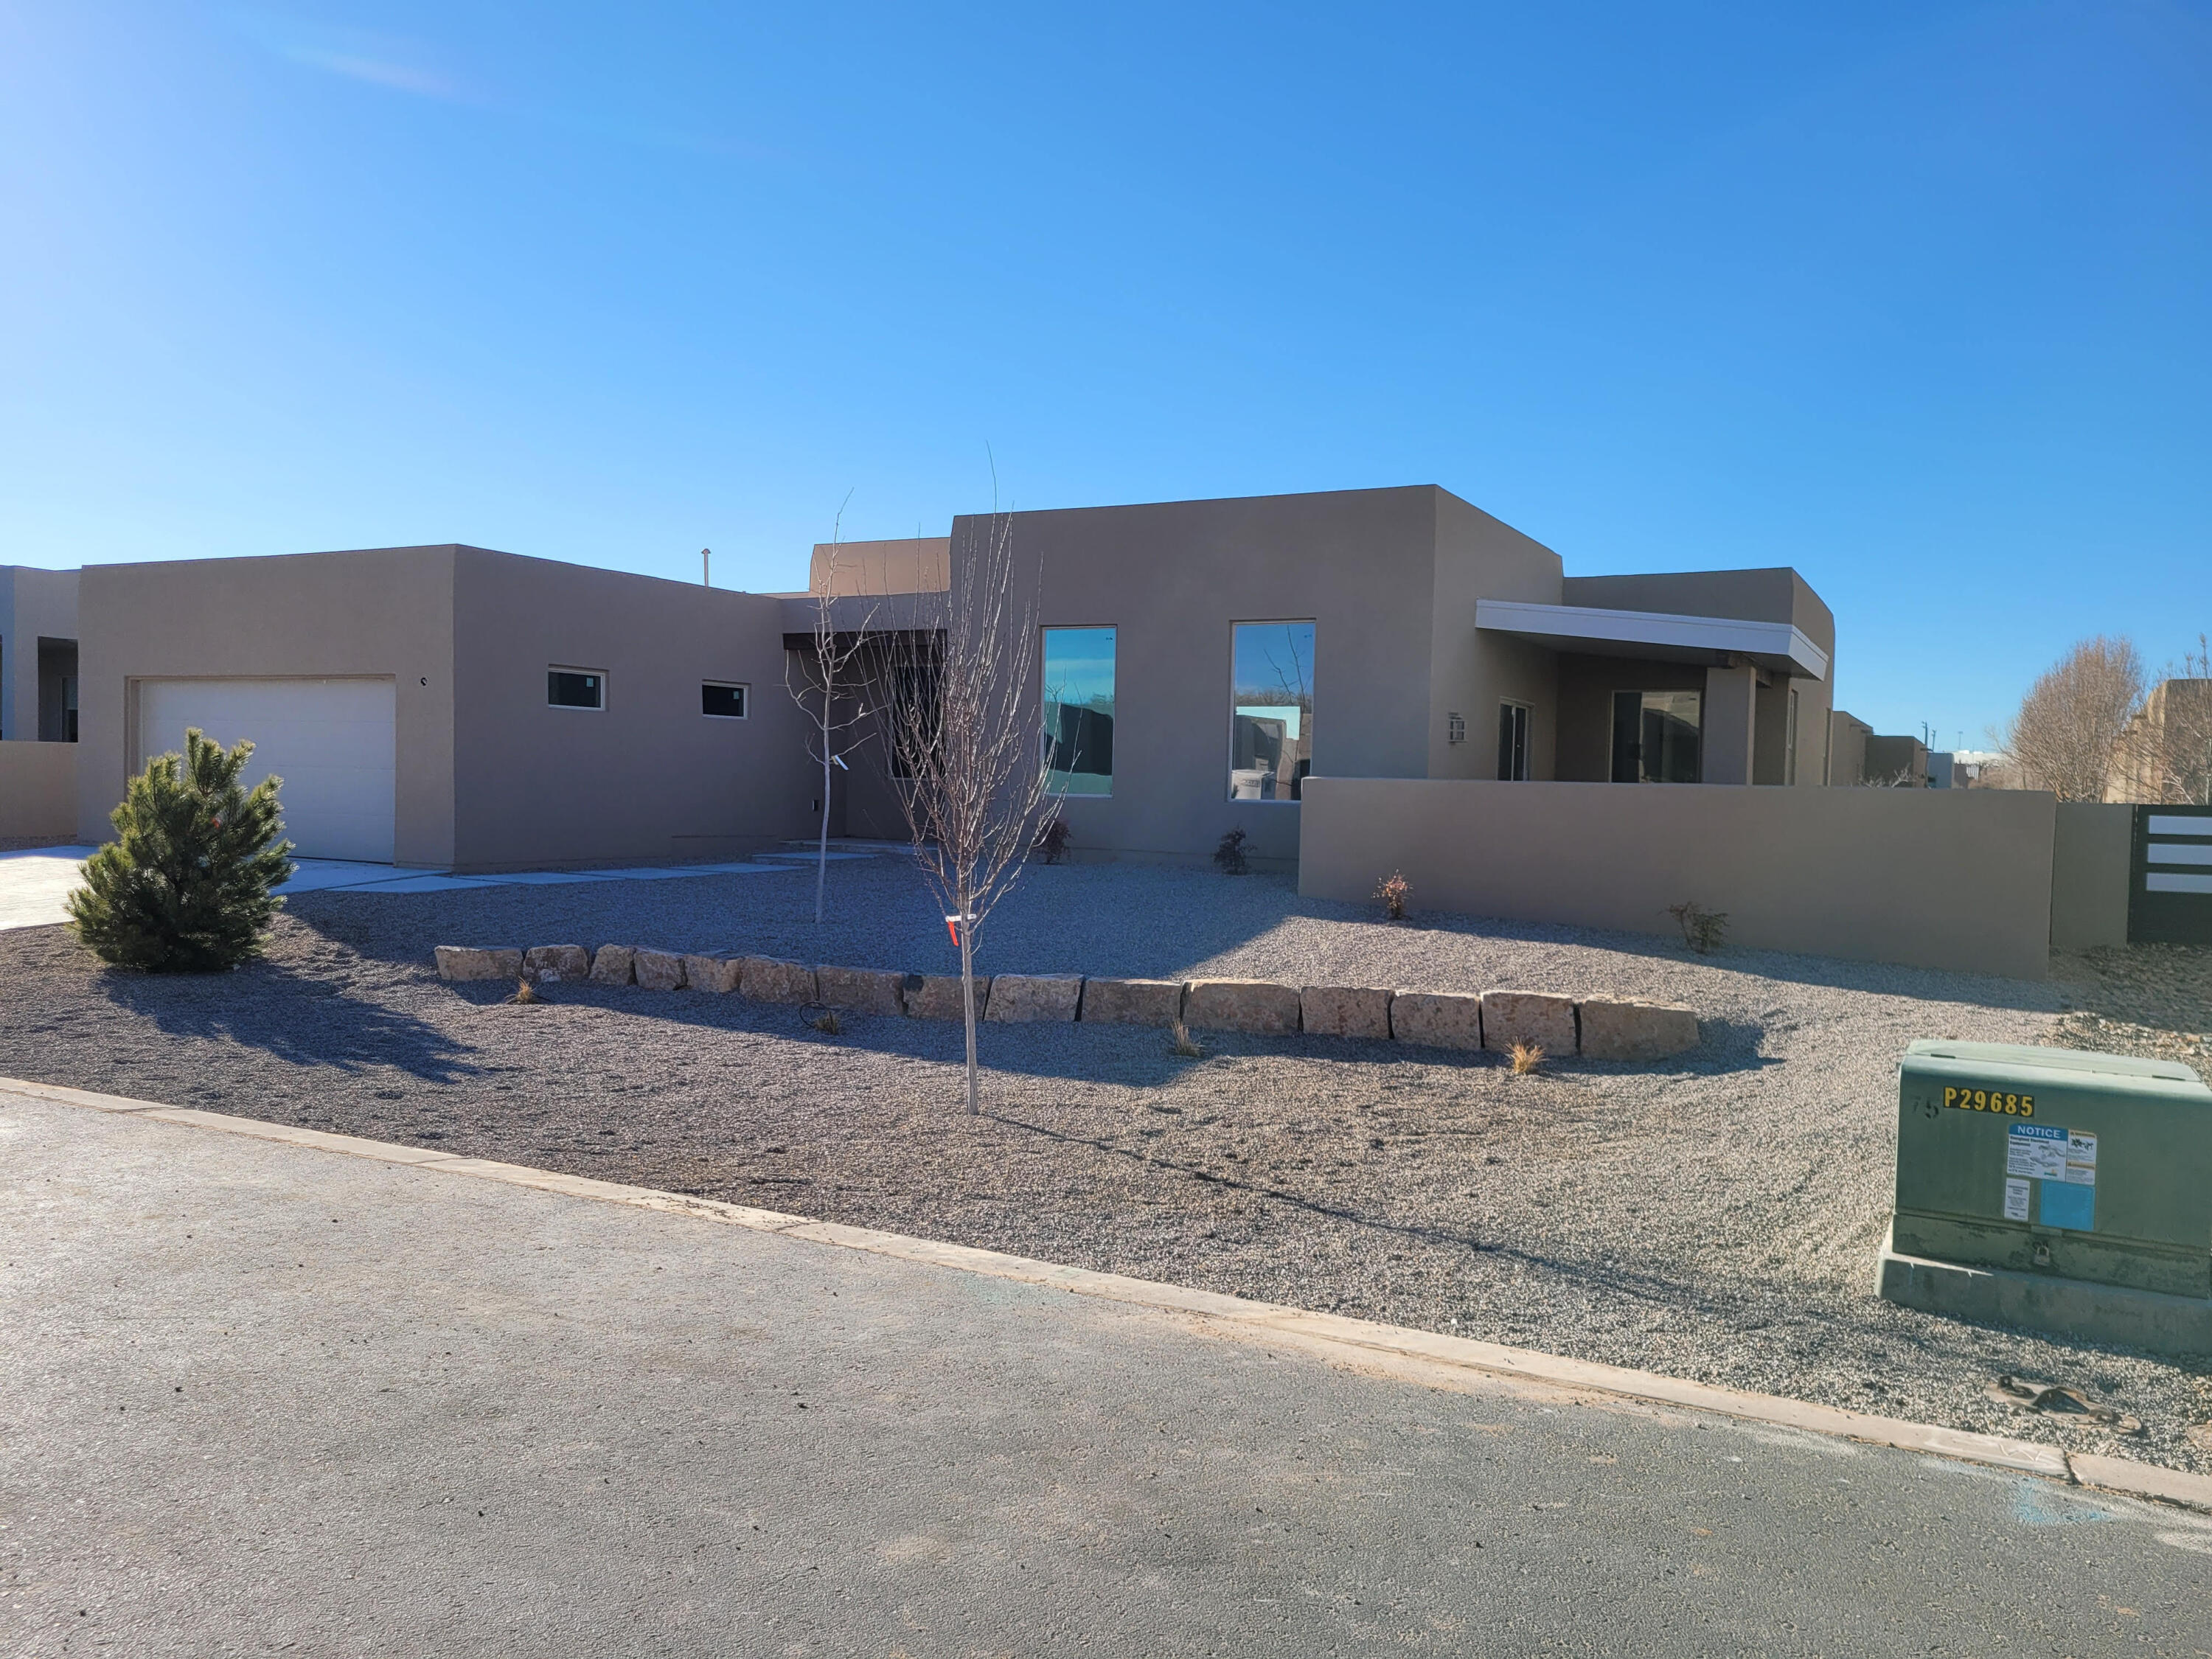 Beautiful new construction within the gated subdivision of Bosque del Rio Grande, with access to the Bosque and some of the prettiest views at every turn within the subdivision! This 2047sf home opens with the Greatroom/Dining areas with contemporary fireplace facing the generous Kitchen.  Gorgeous tile flooring throughout except for carpeted bedrooms.  On one side of the house is the large Owner's Suite with TWO huge walk-in Closets, and a lovely bathroom with walk-in shower and double vanity. The 2nd and 3rd bedrooms are on the other side, sharing a full bathroom. 2nd bedroom has double entry doors and a walk-in closet. Kitchen features a pantry and stainless-steel dishwasher, gas range with ss hood, and drawer microwave. Partial mtn views from front courtyard, OS bedroom, and greatroom!